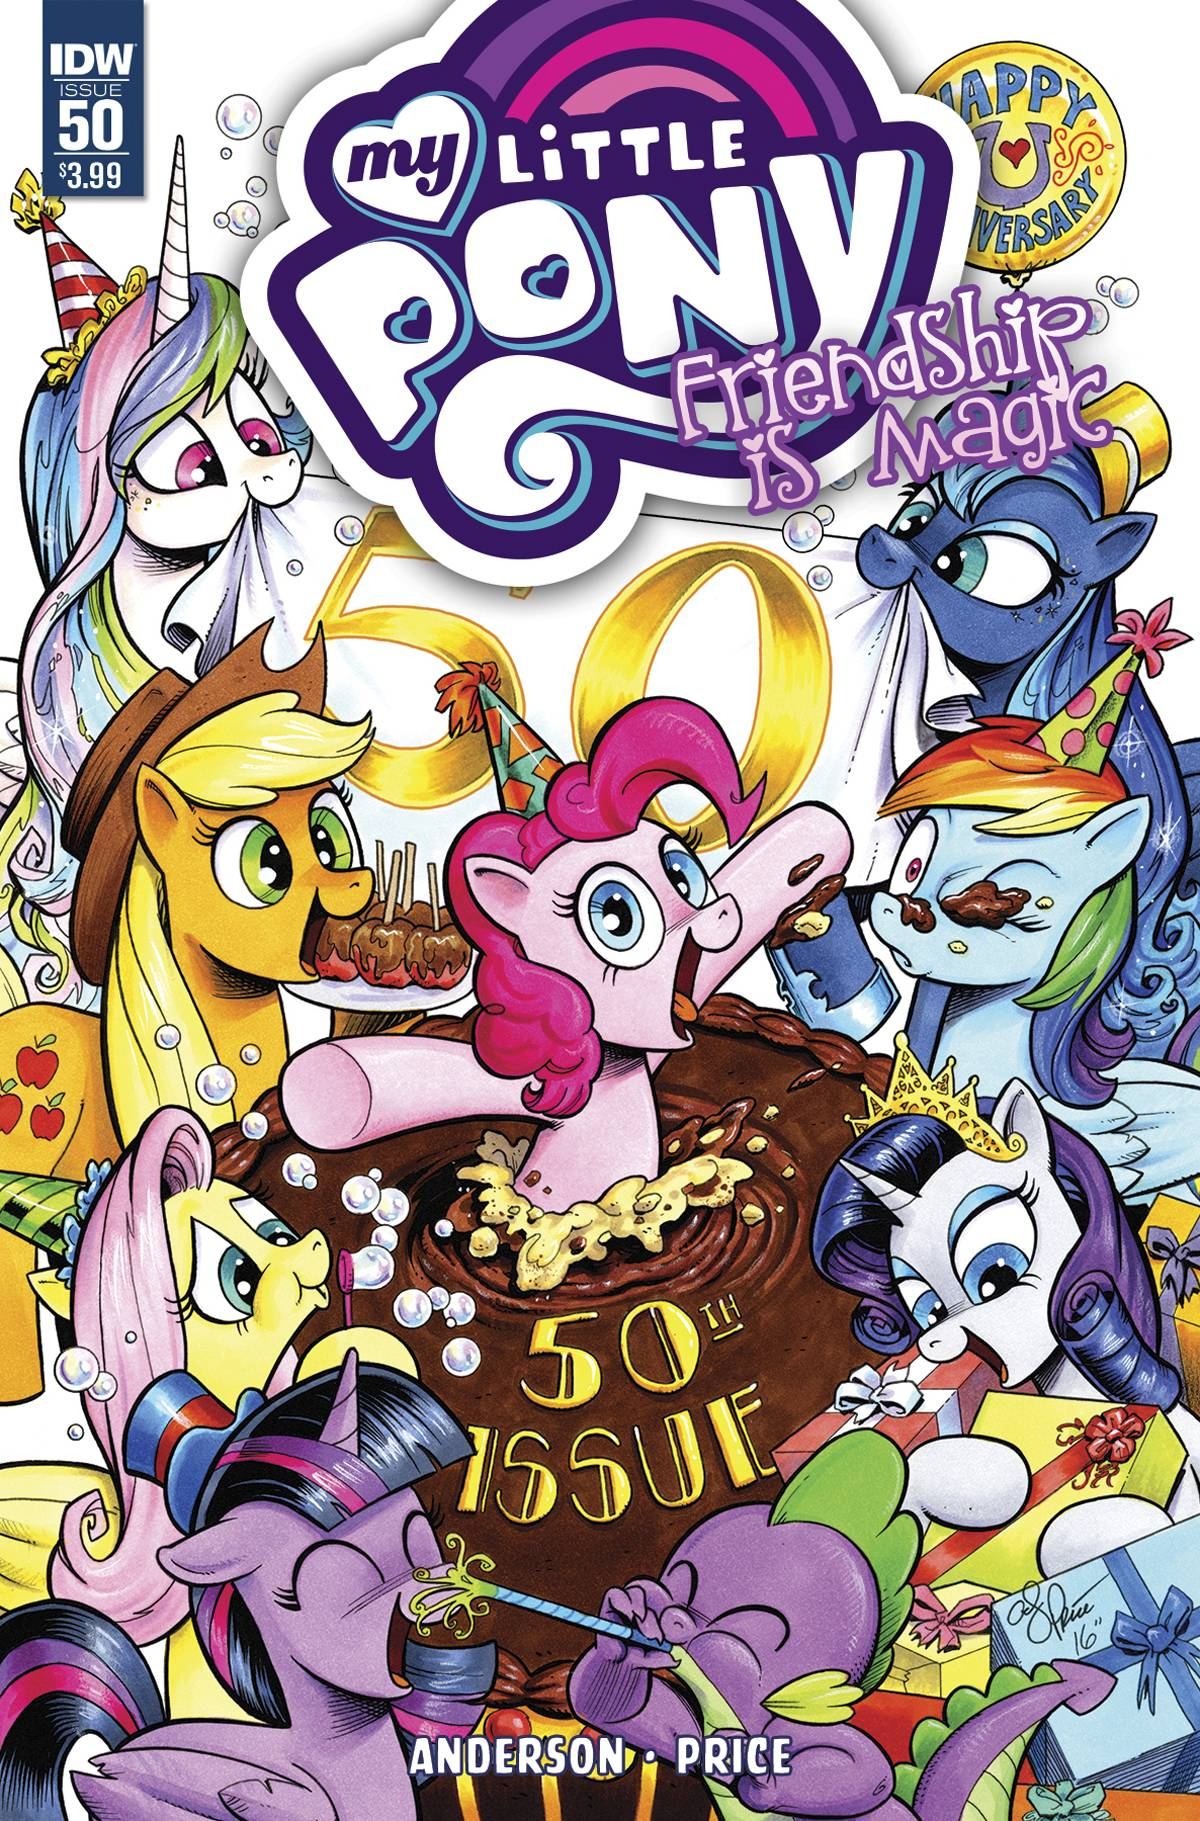 MY LITTLE PONY FRIENDSHIP IS MAGIC #50